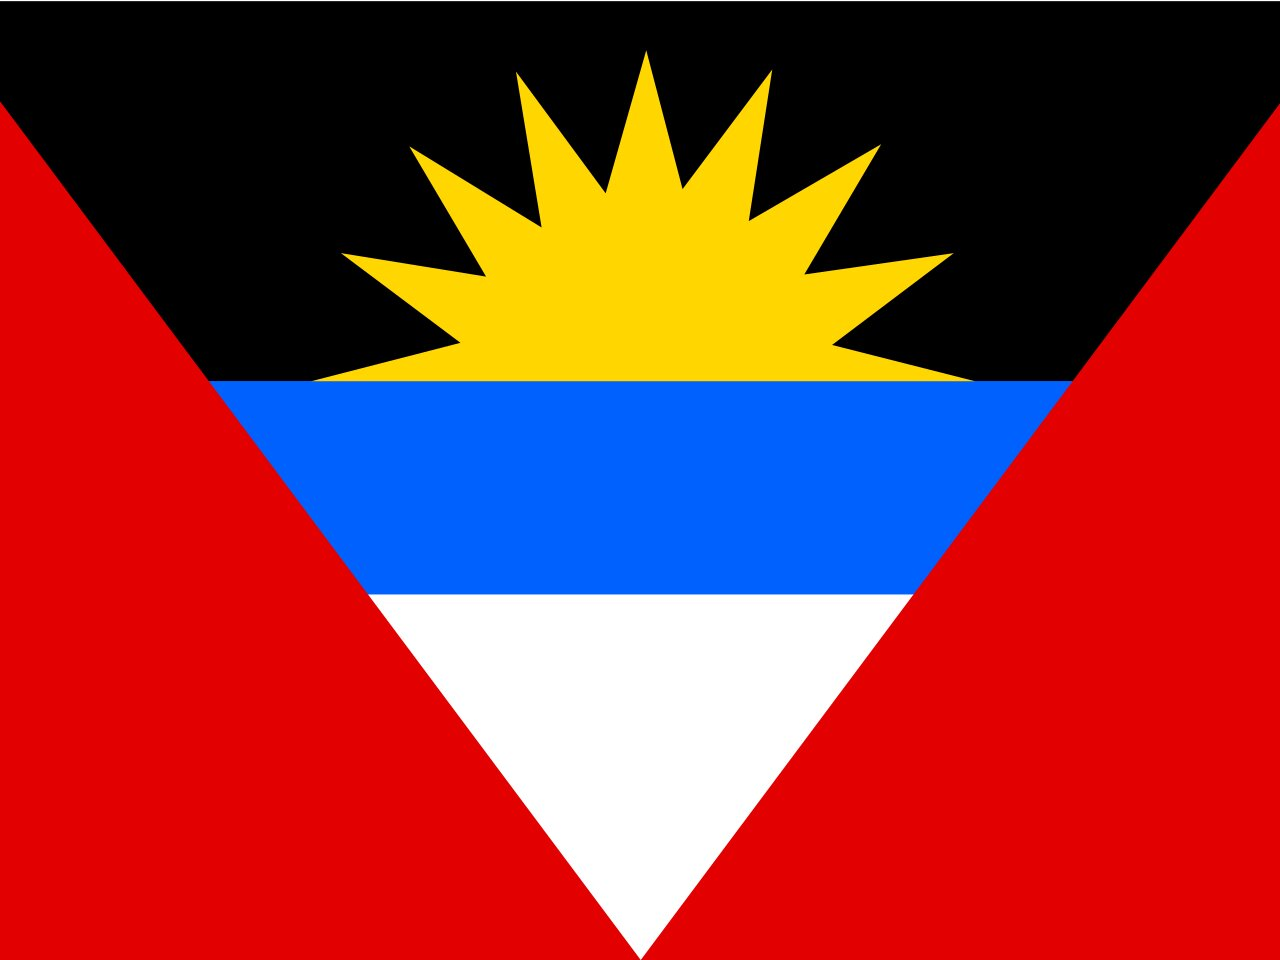 antigua-and-barbuda-flag